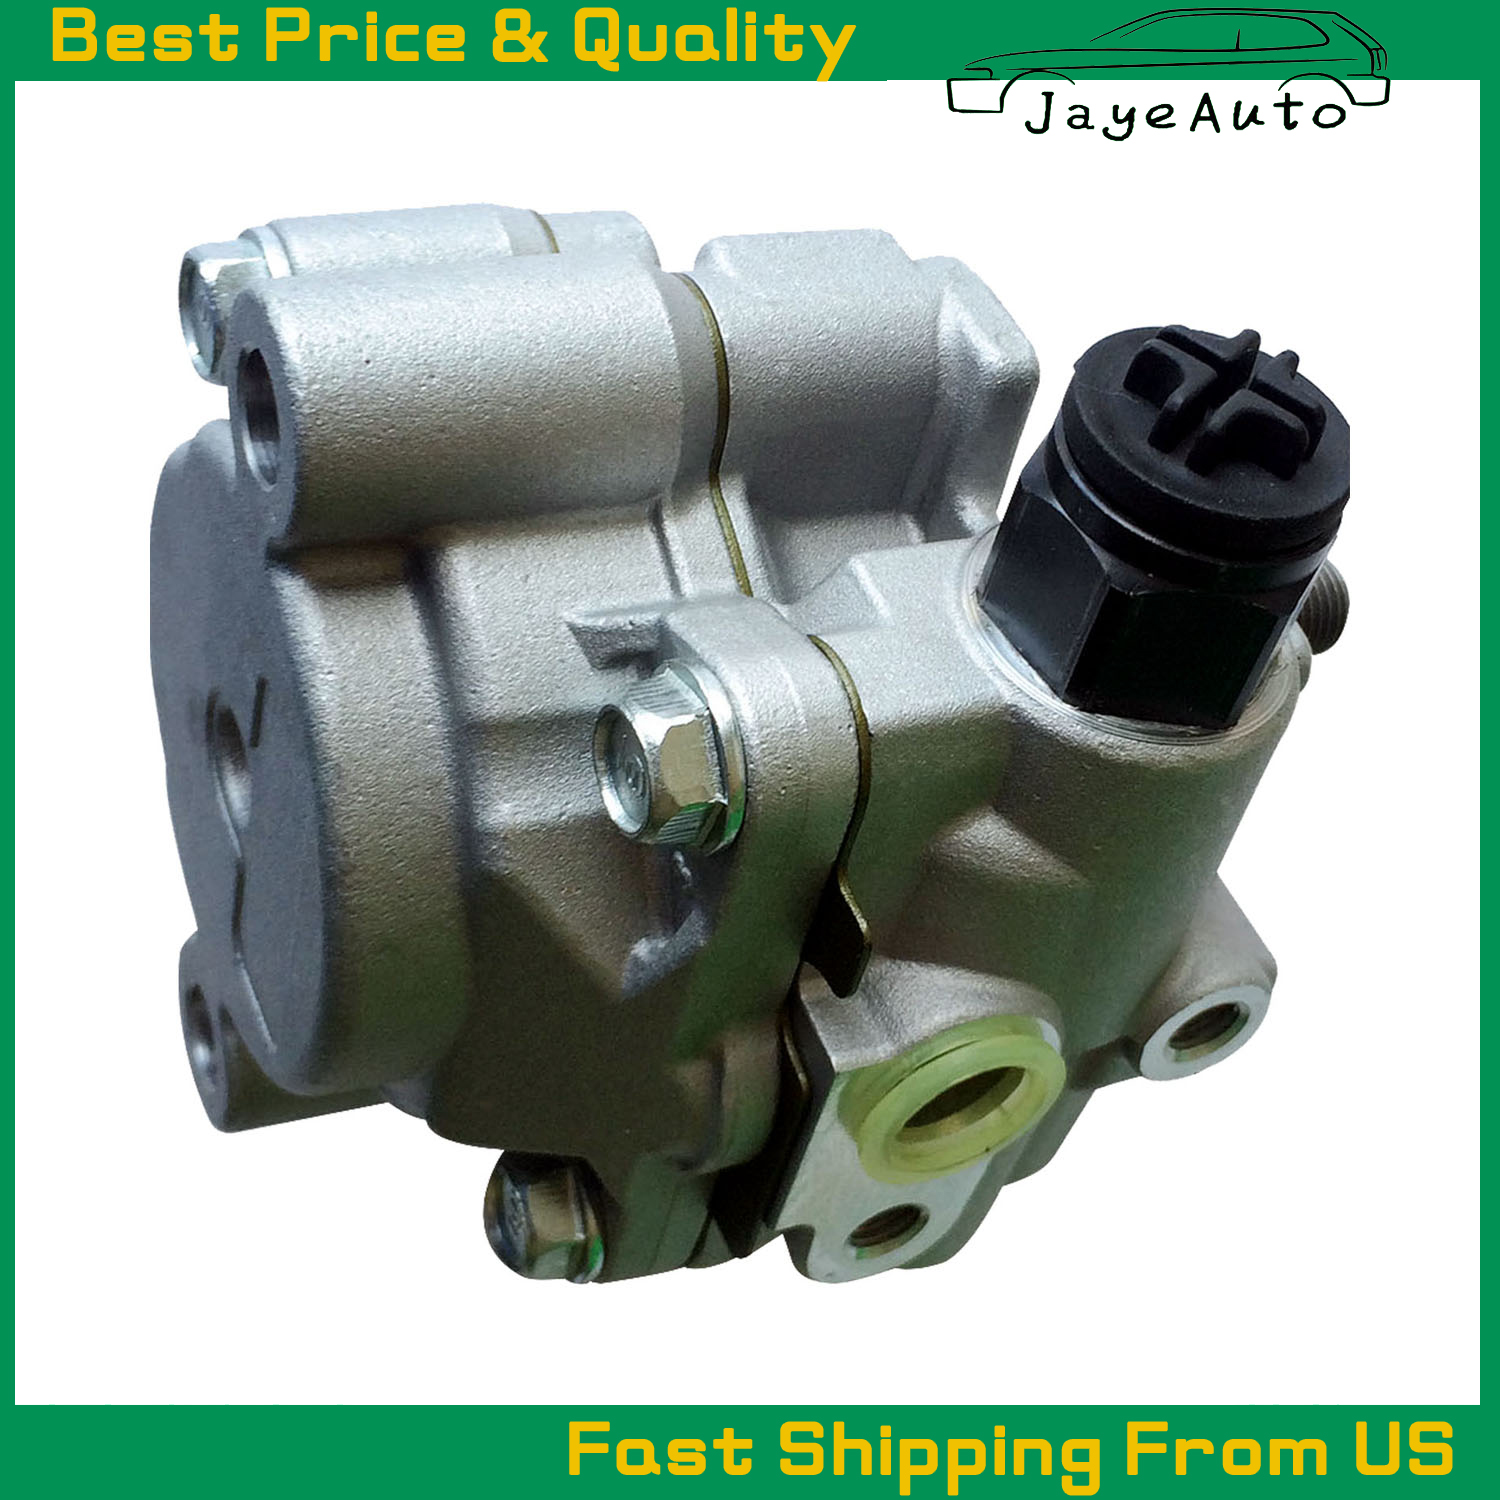 hight resolution of details about oe quality power steering pump 4432033110 fit 95 04 toyota solara camry 3 0l v6